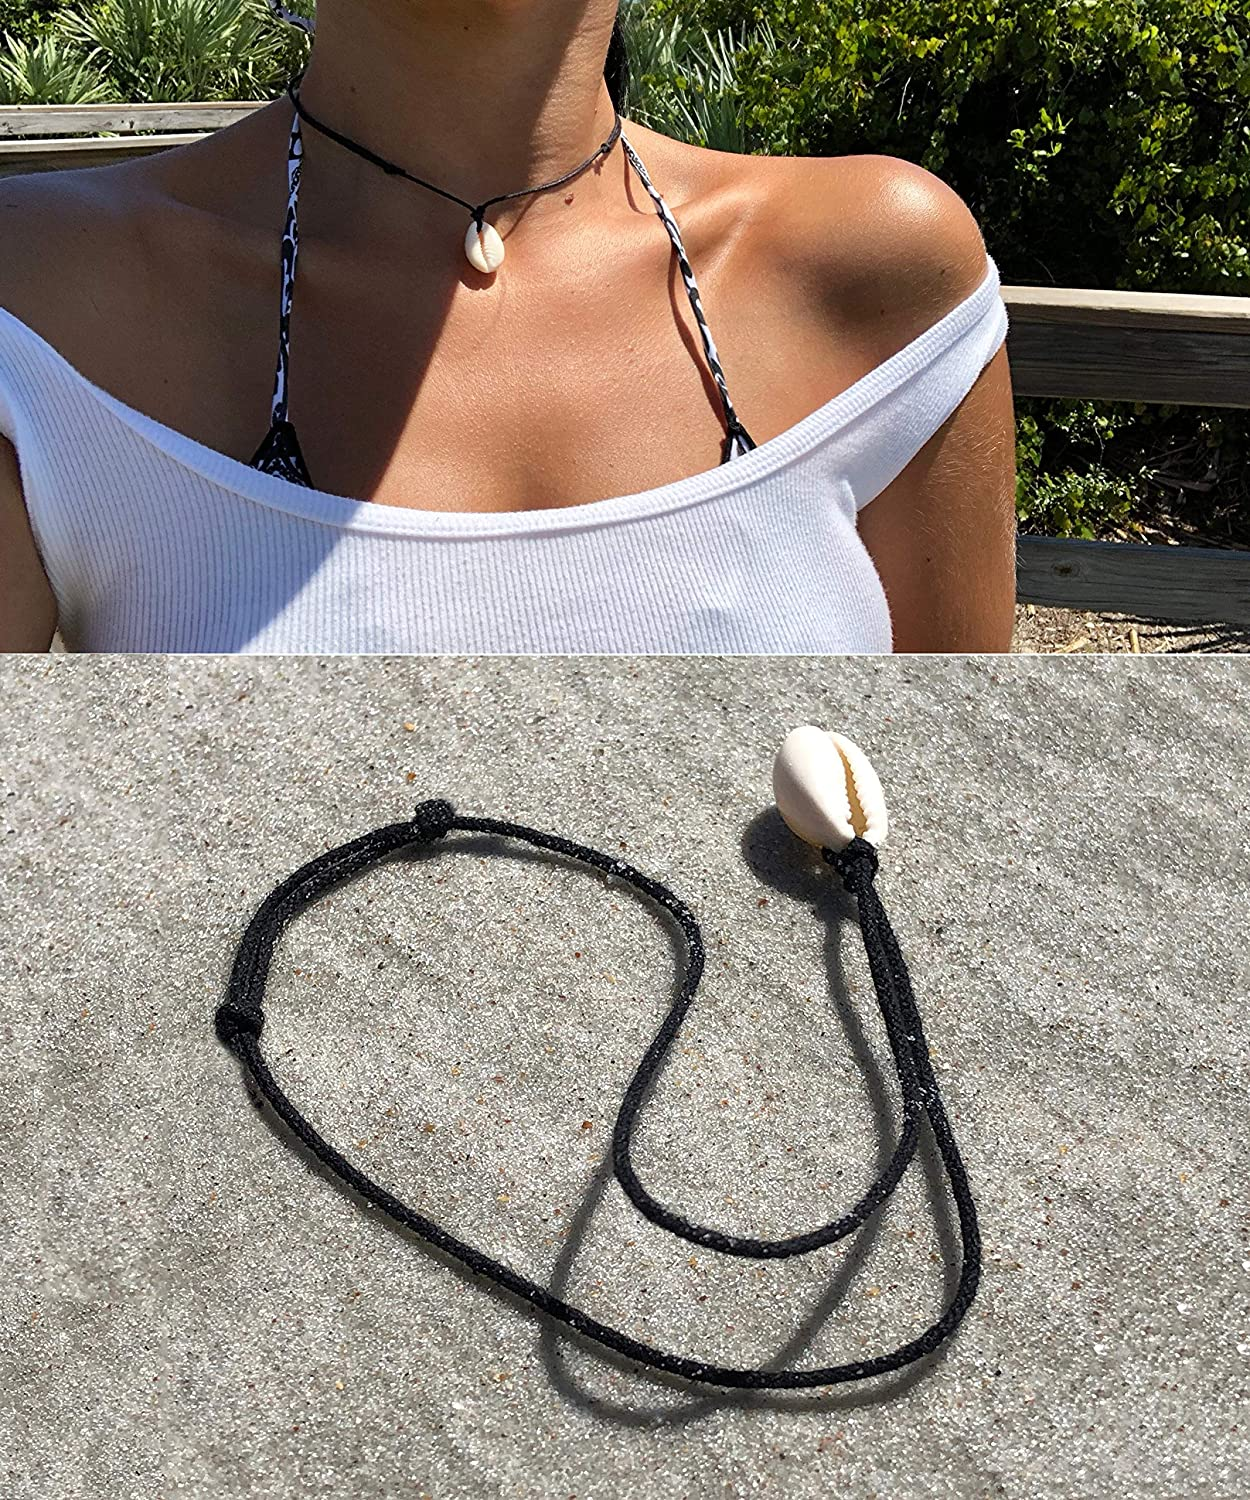 POTESSA Leather Cord Choker Necklace Double Knotted Adjustable Pendant Necklace Minimalist Jewelry for Women Men Unisex